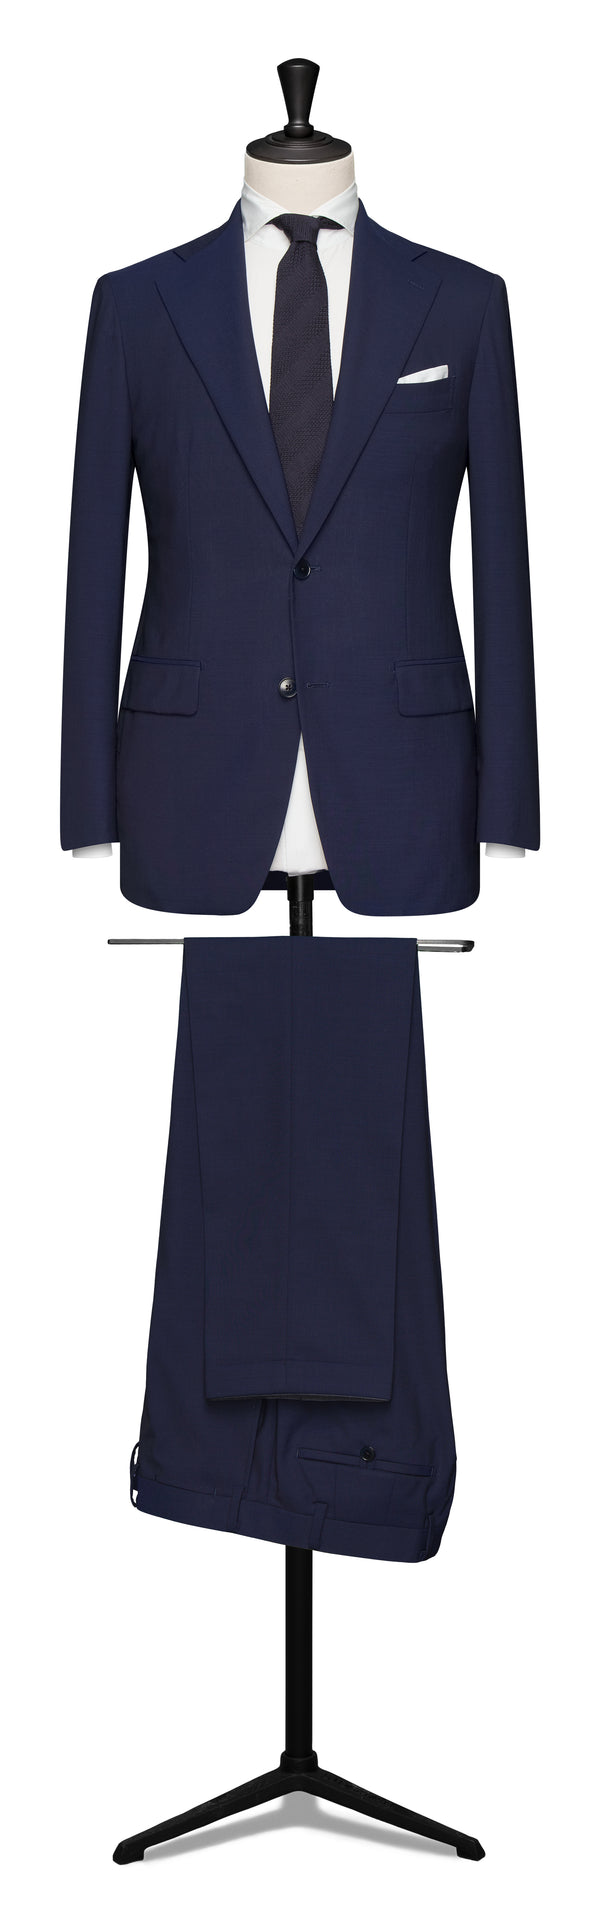 The Navy Suit